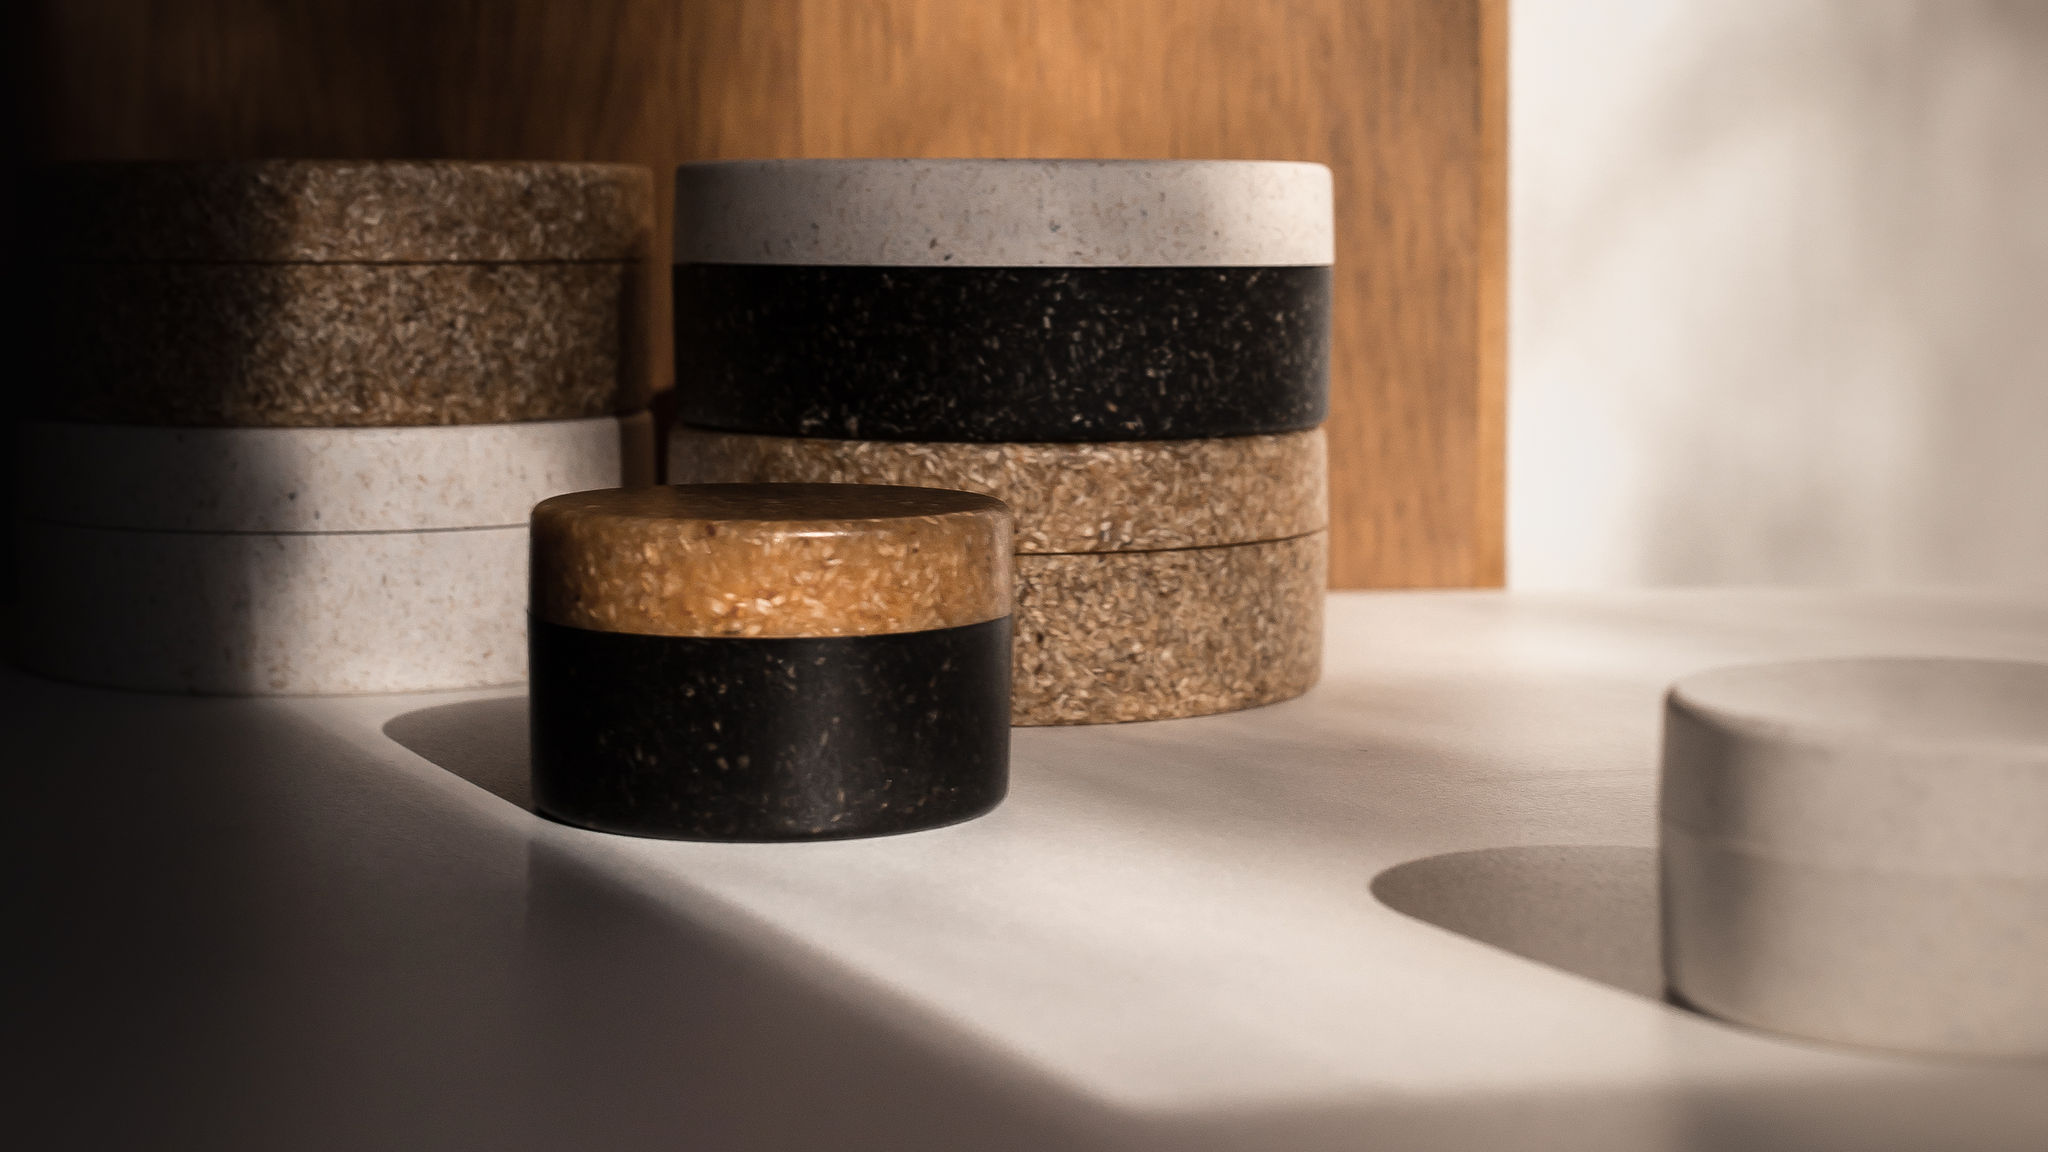 Sulapac Premium jars containing FSC certified wood